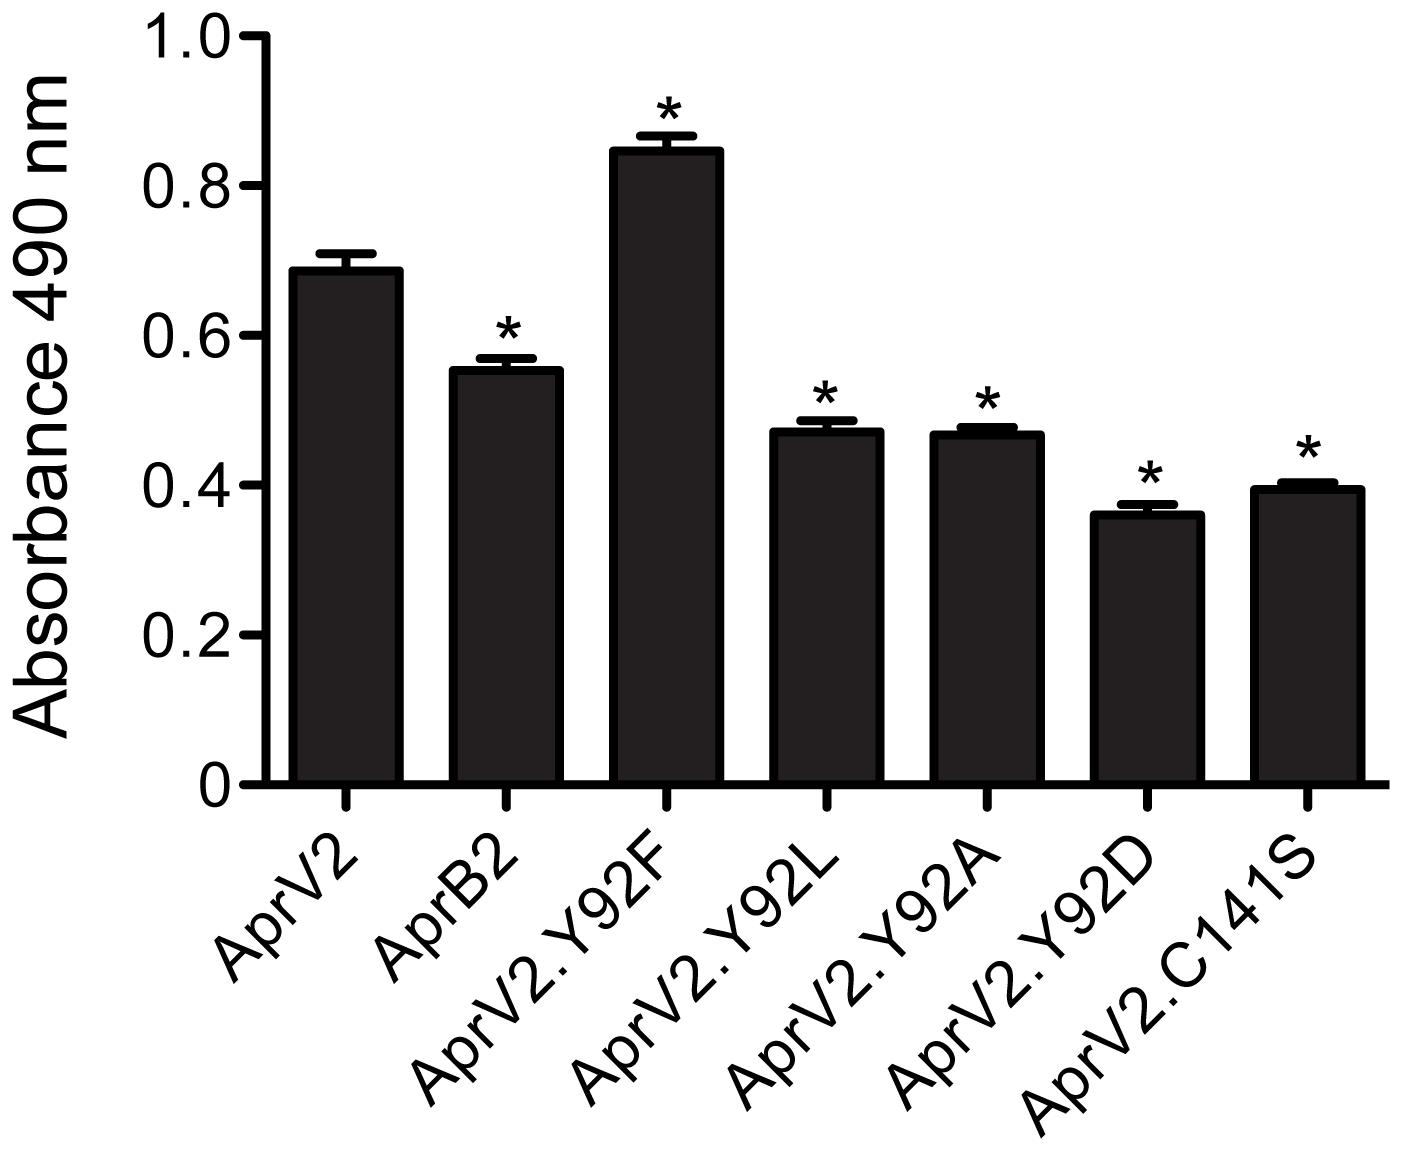 Elastase activity of AprV2, AprB2 and mutants.